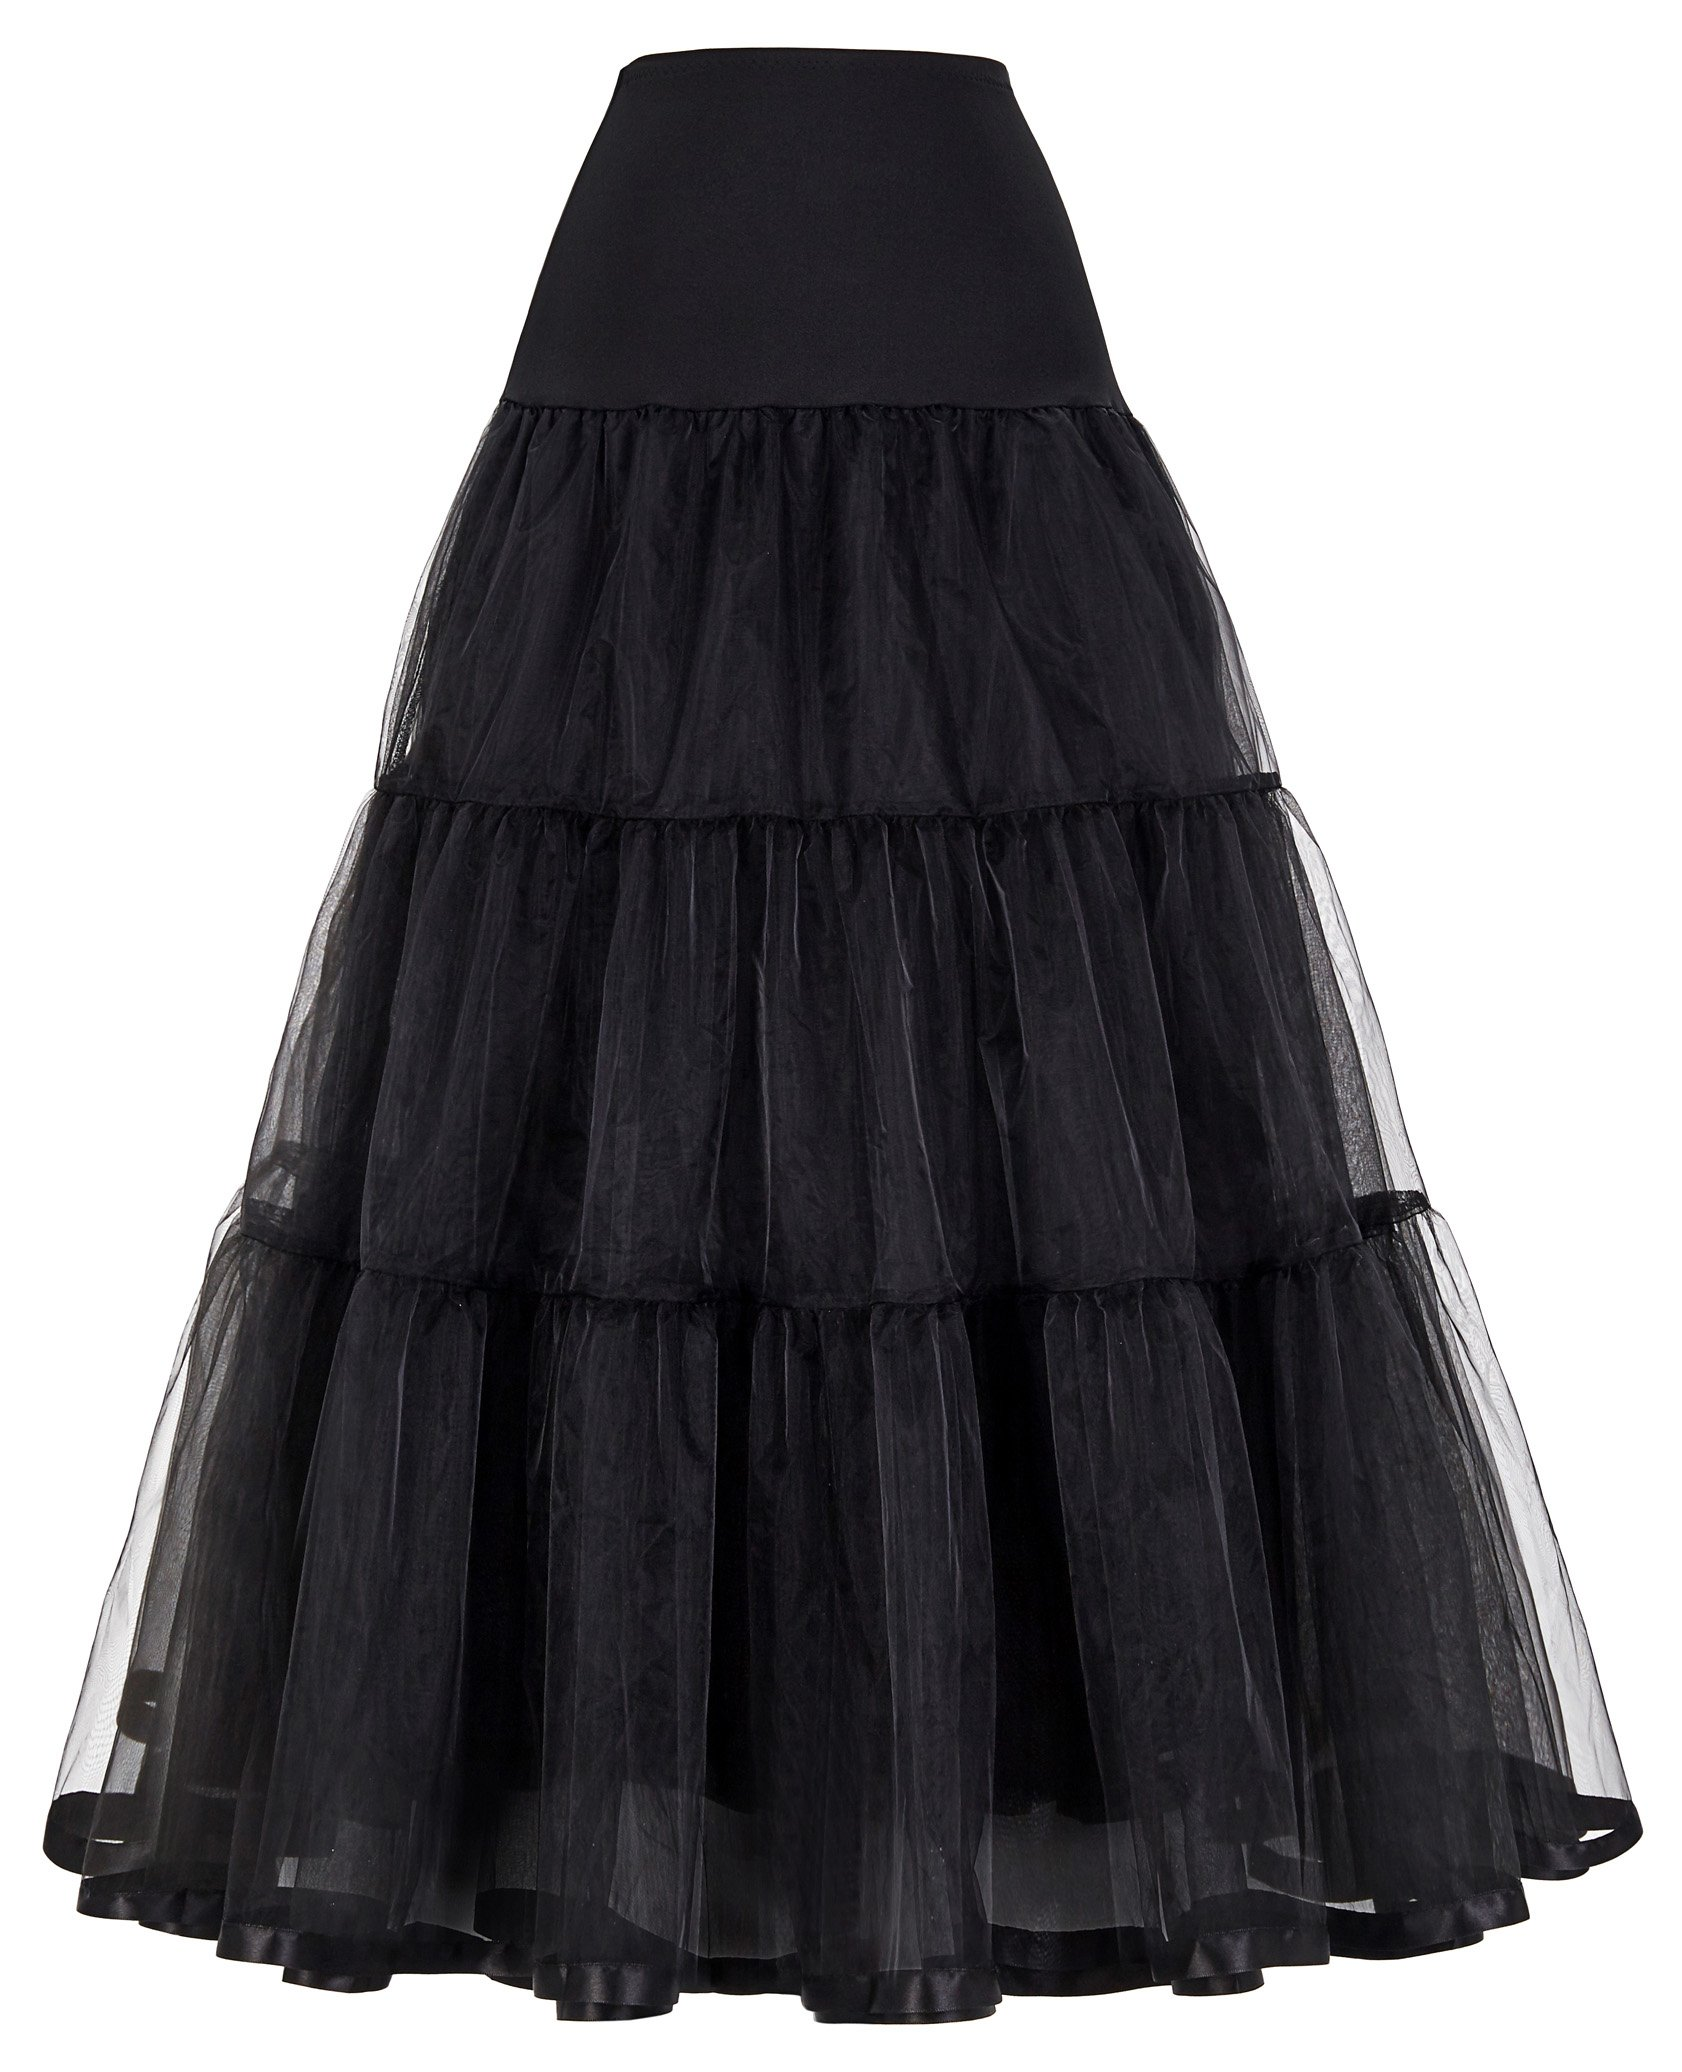 GRACE KARIN Plus Size Hoopless Bridal Tiered Crinoline Petticoat for Ball Gown (3X,Black)